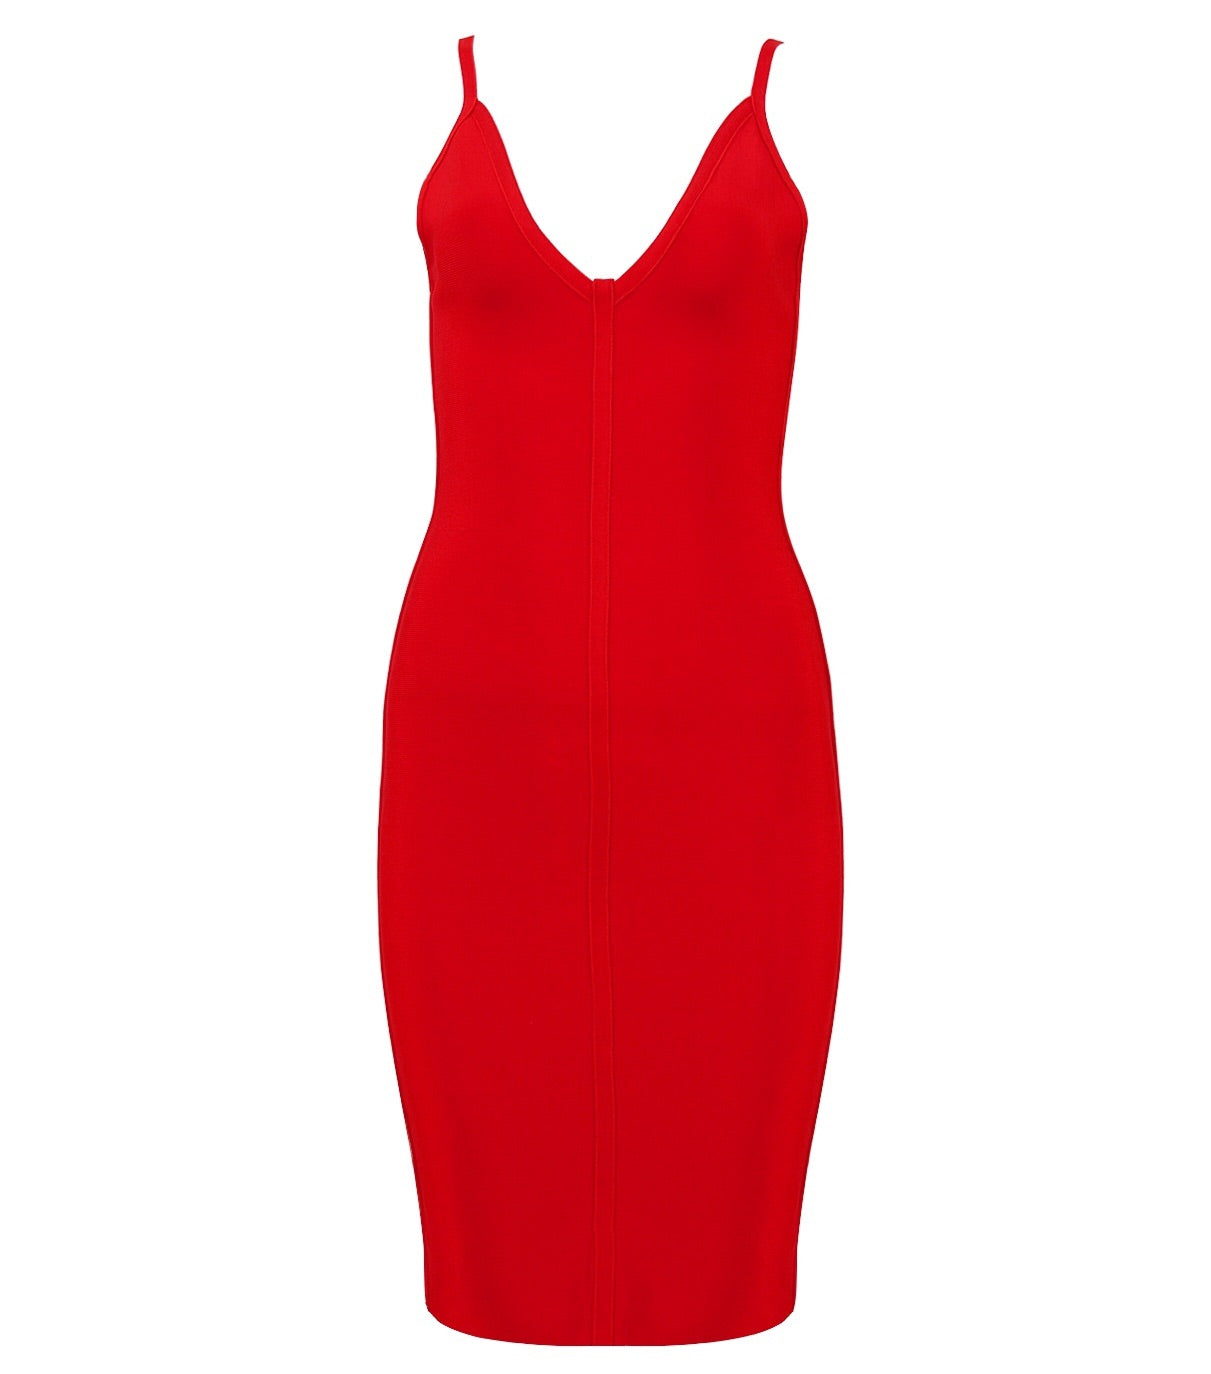 Penelope Red Spaghetti Strap Bandage Dress